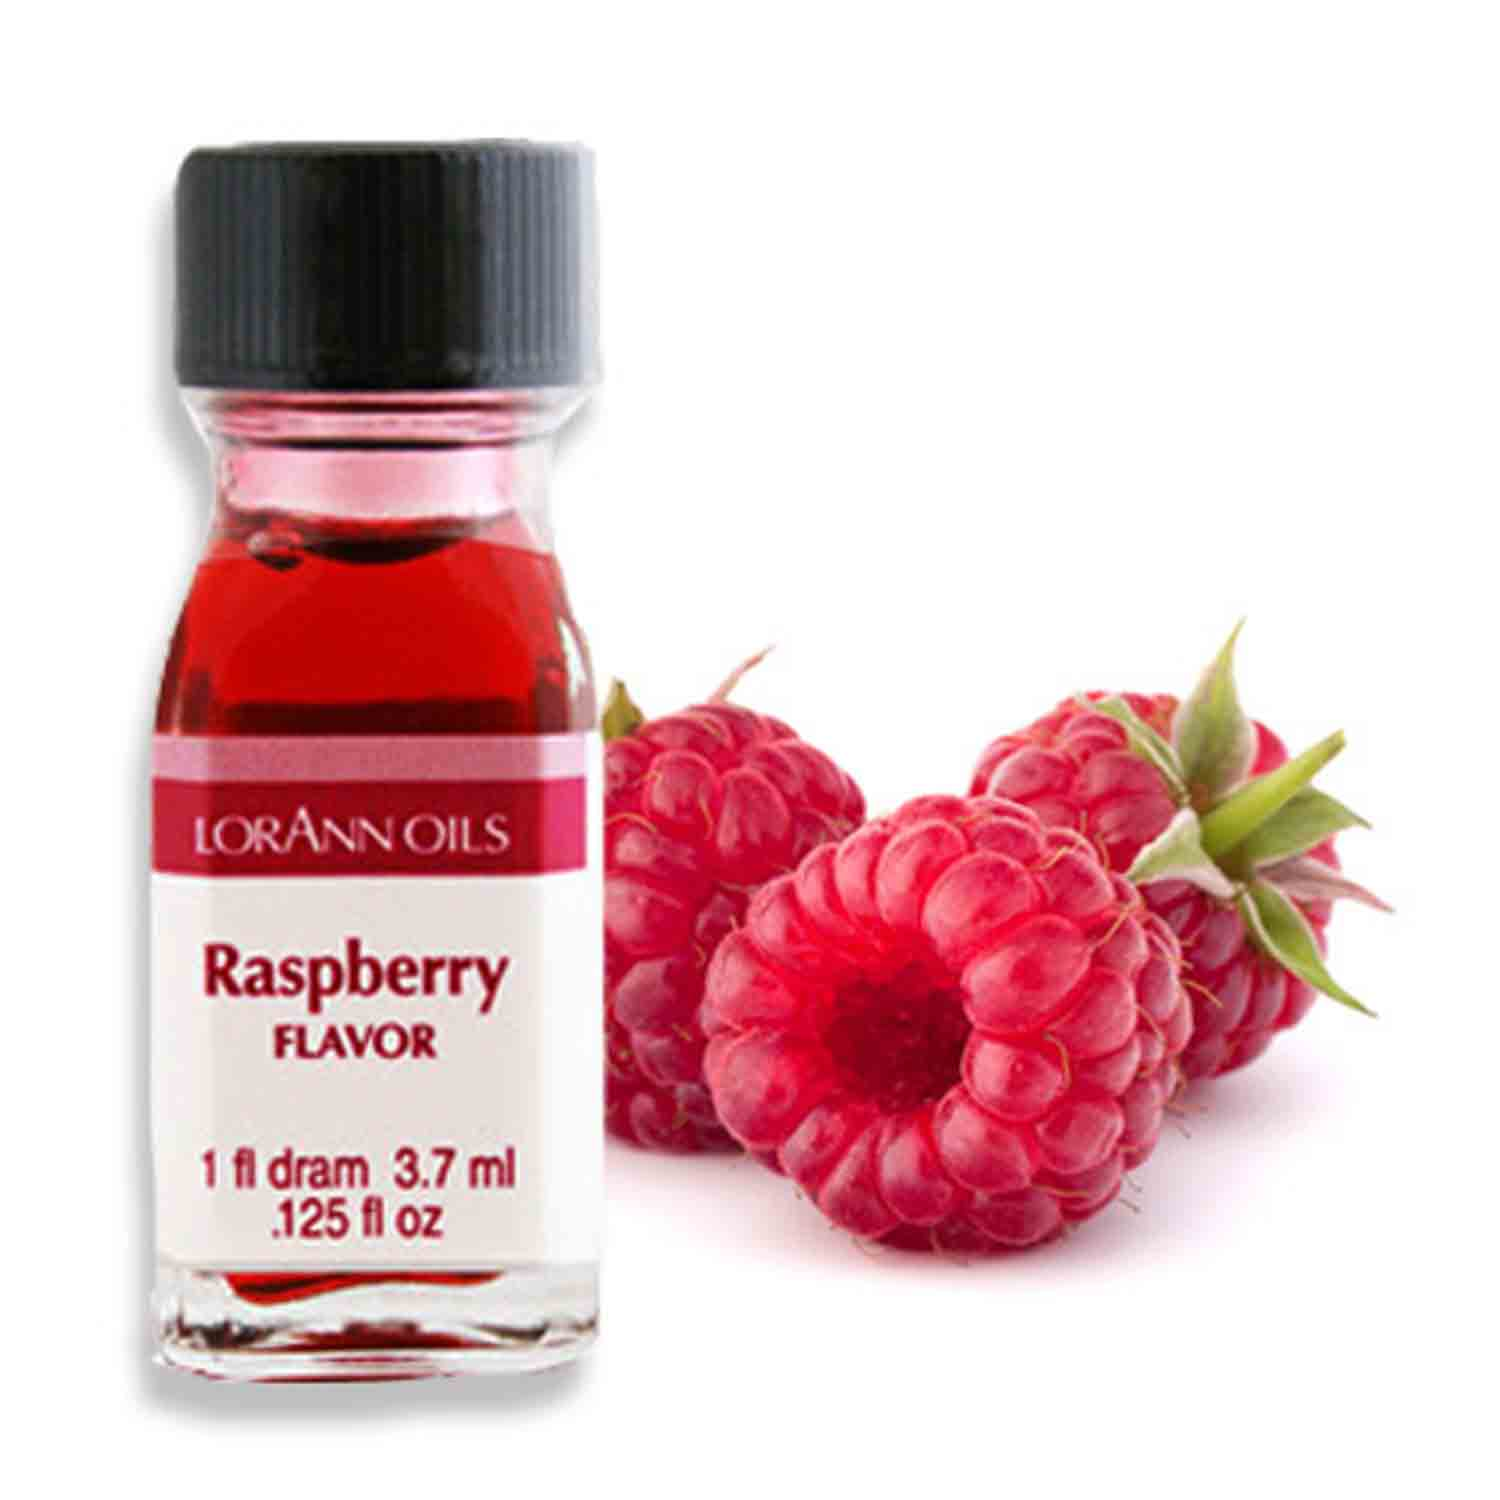 Raspberry Super-Strength Flavor